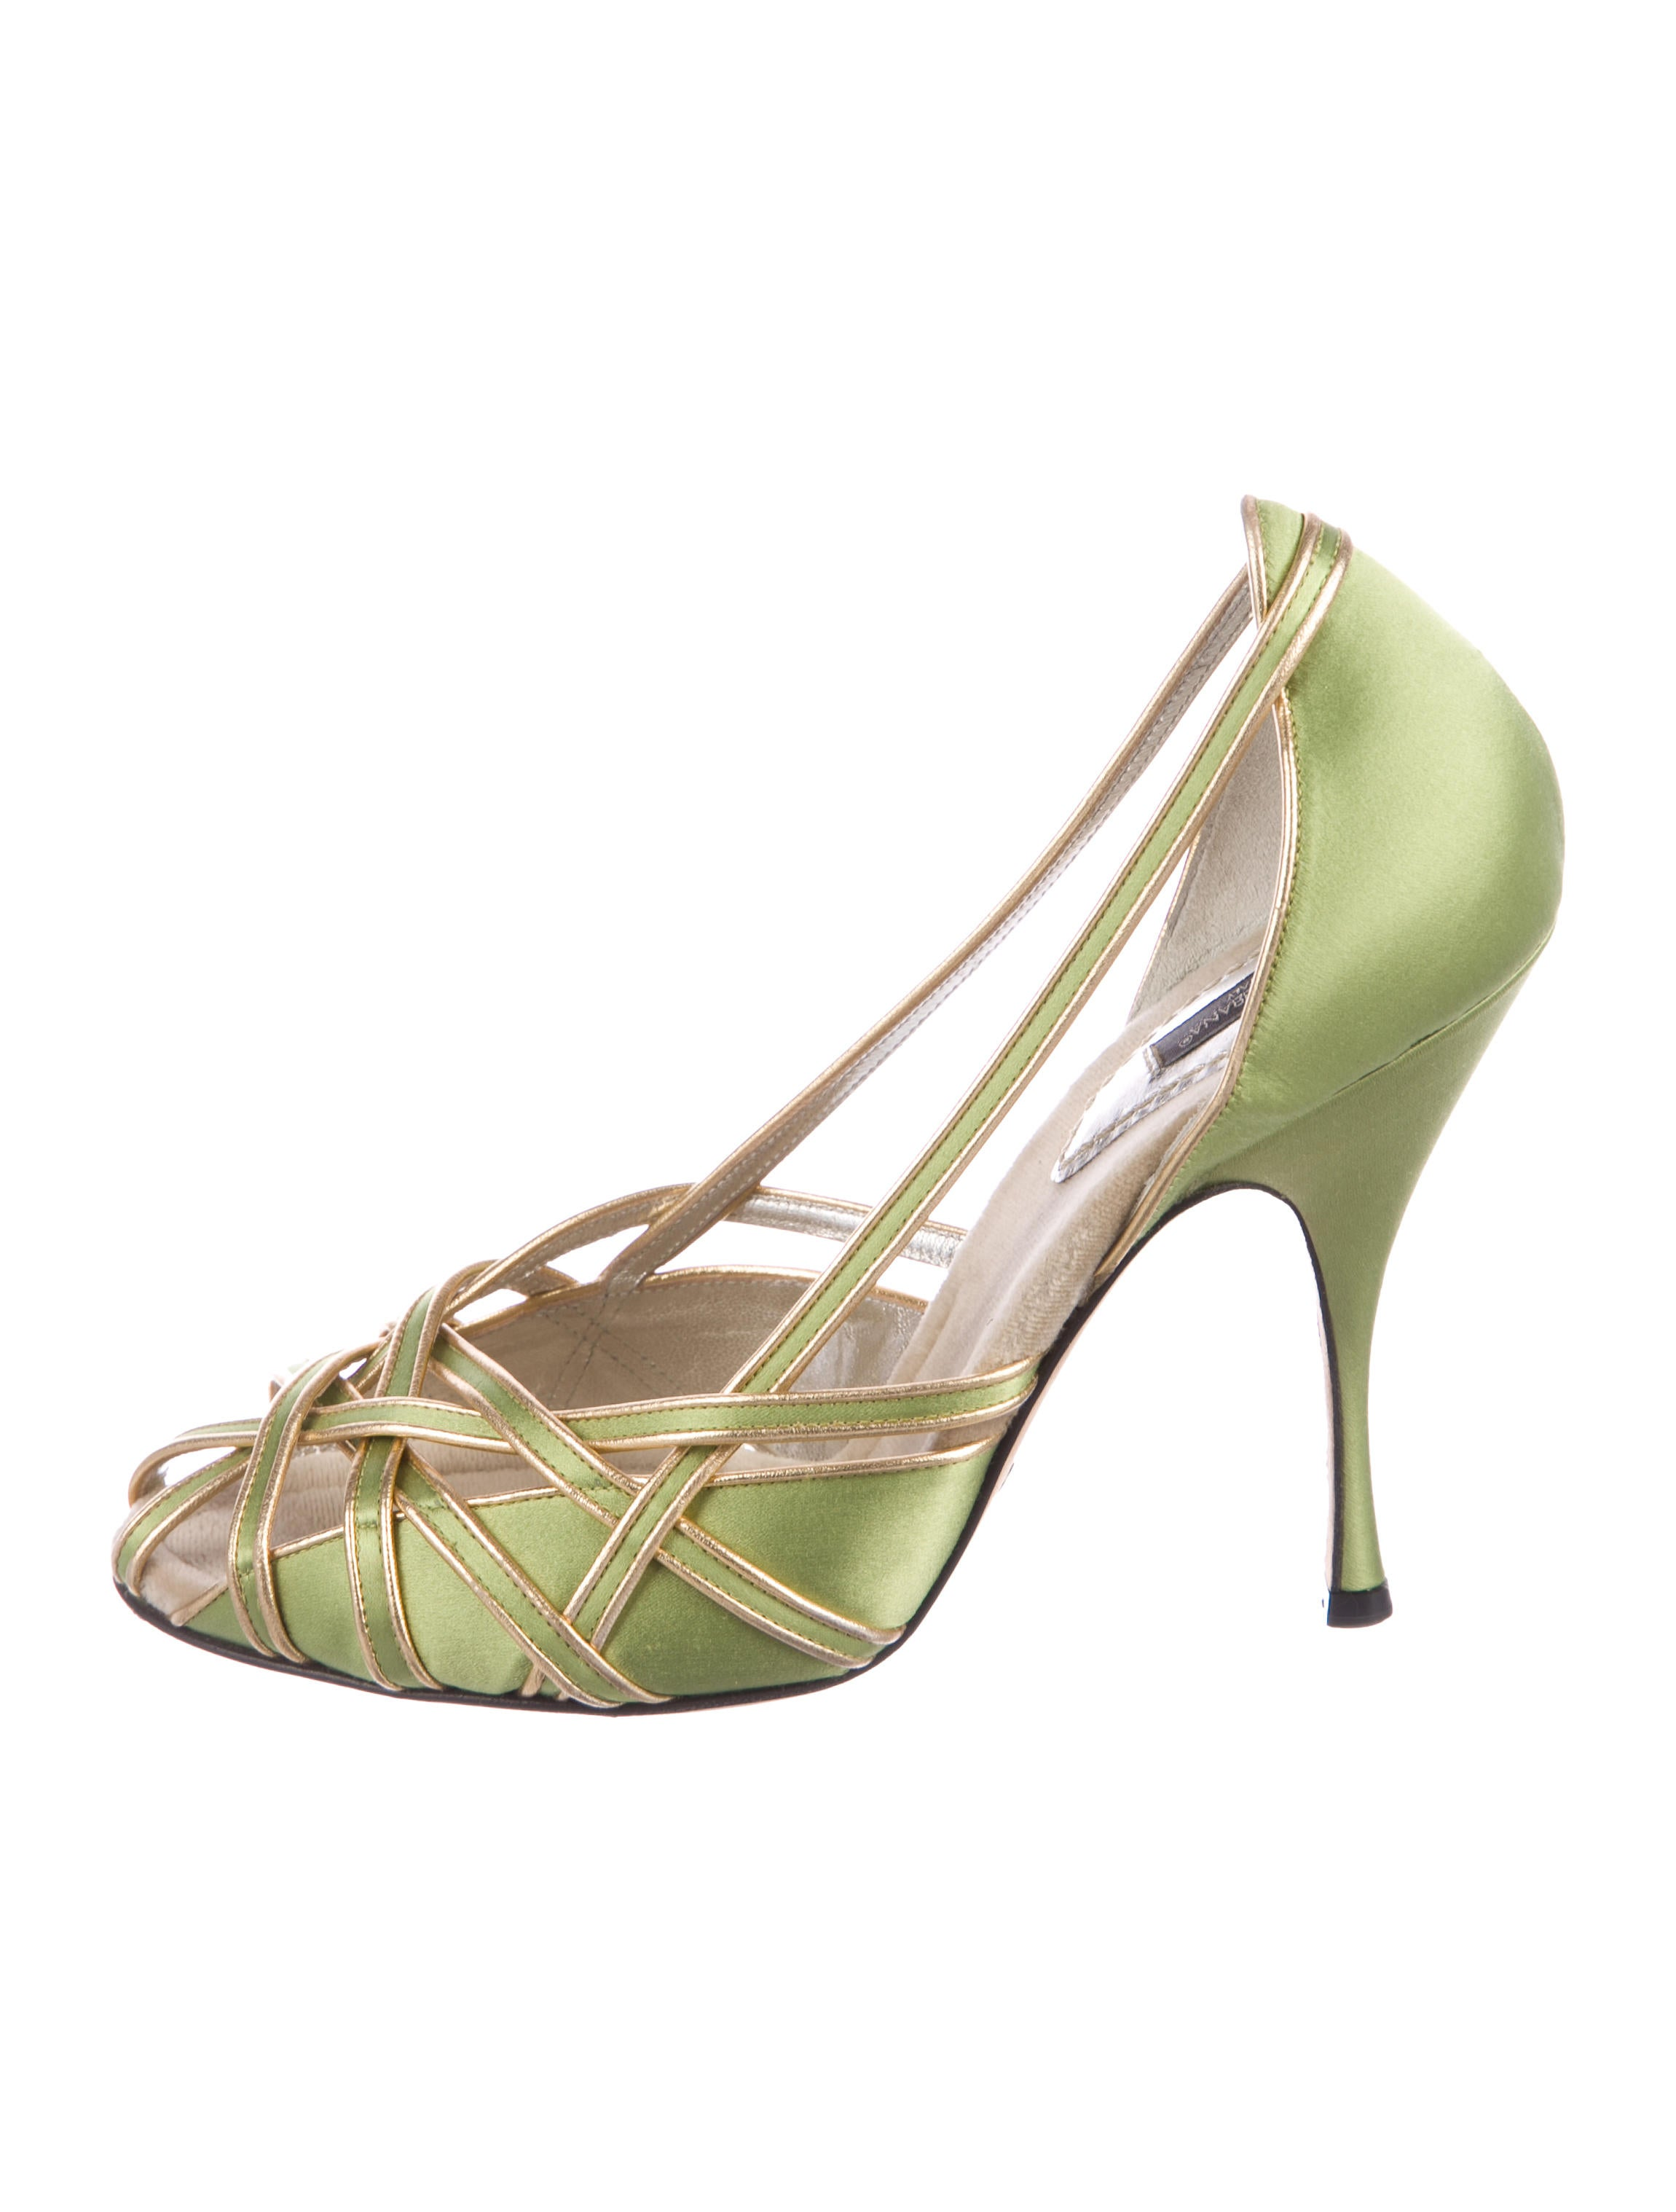 Dolce & Gabbana Satin Multistrap Pumps really low shipping fee cheap online wide range of free shipping fashion Style cheap sale best seller tkGpnSKZb